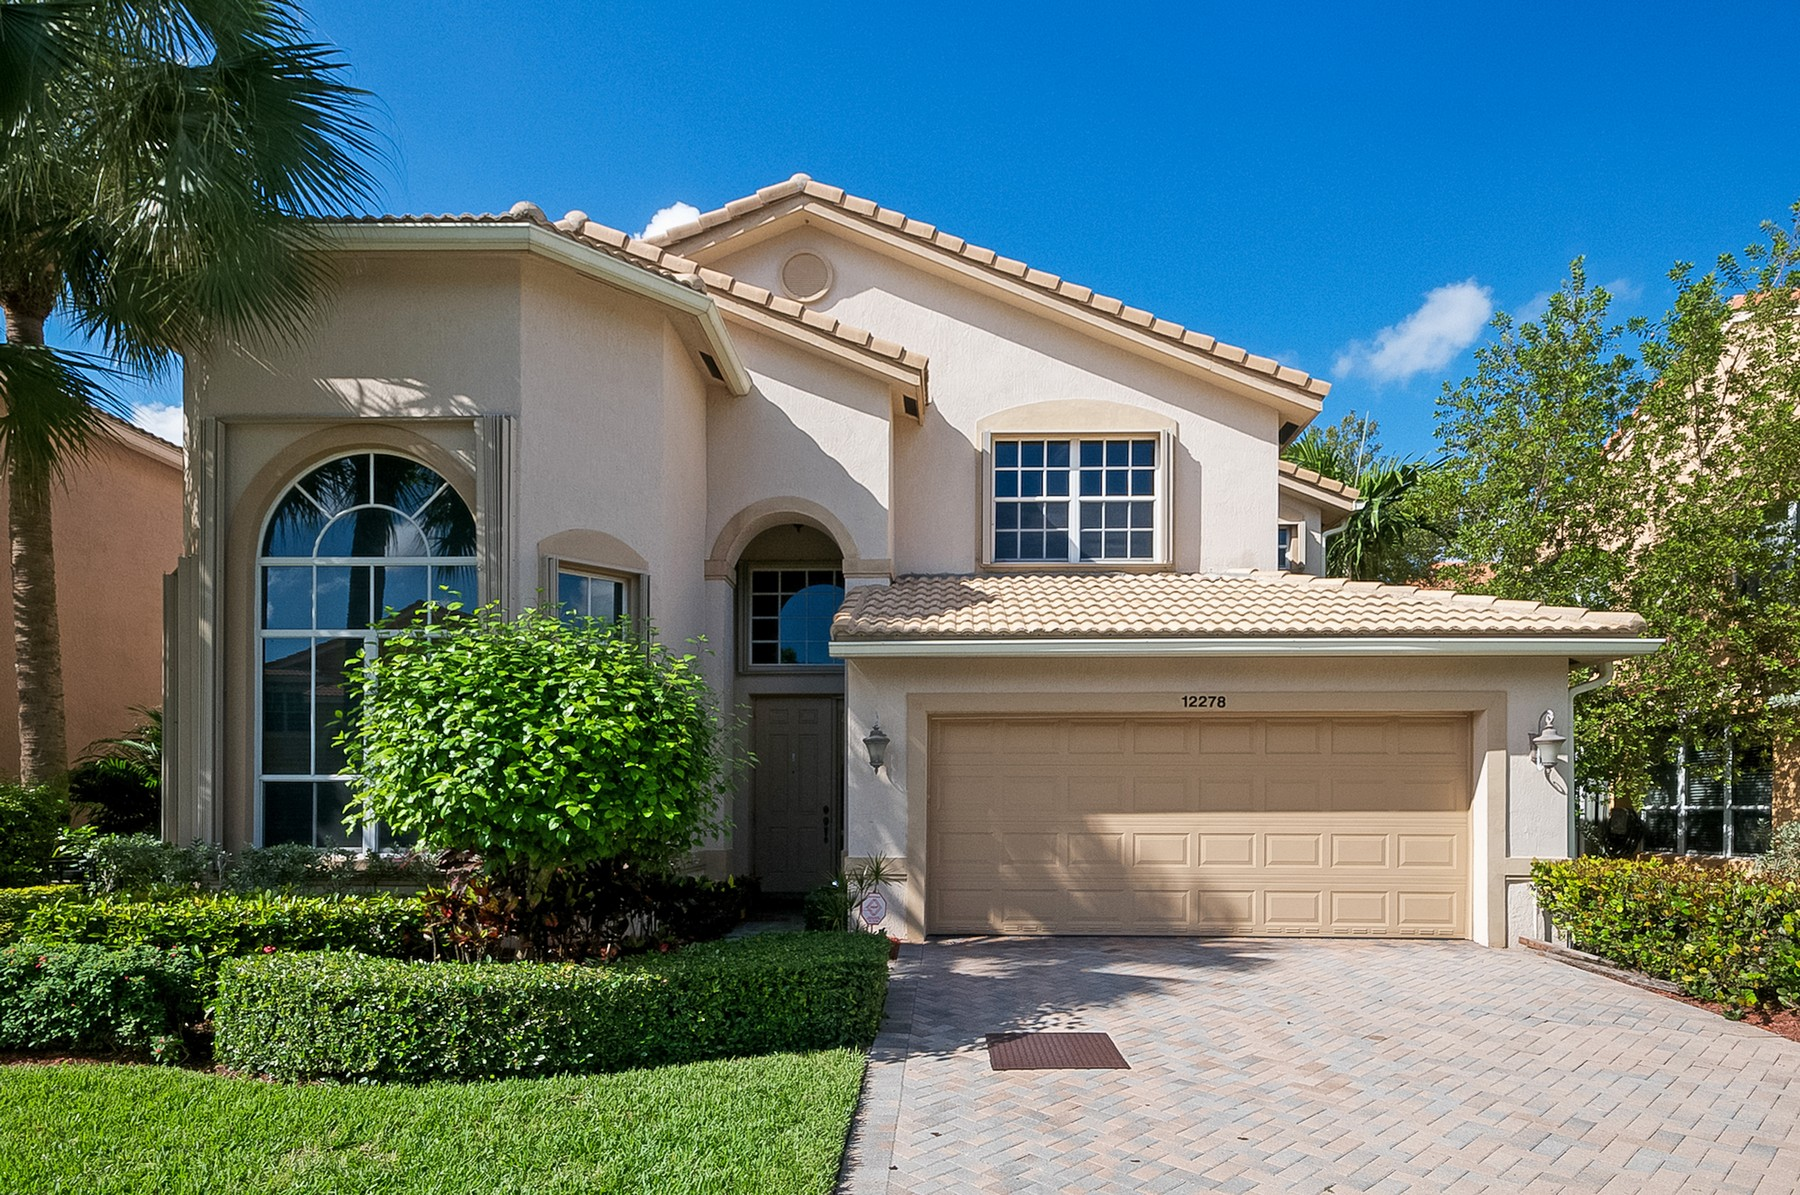 Property For Sale at 12278 Colony Preserve Dr , Boynton Beach, FL 33436